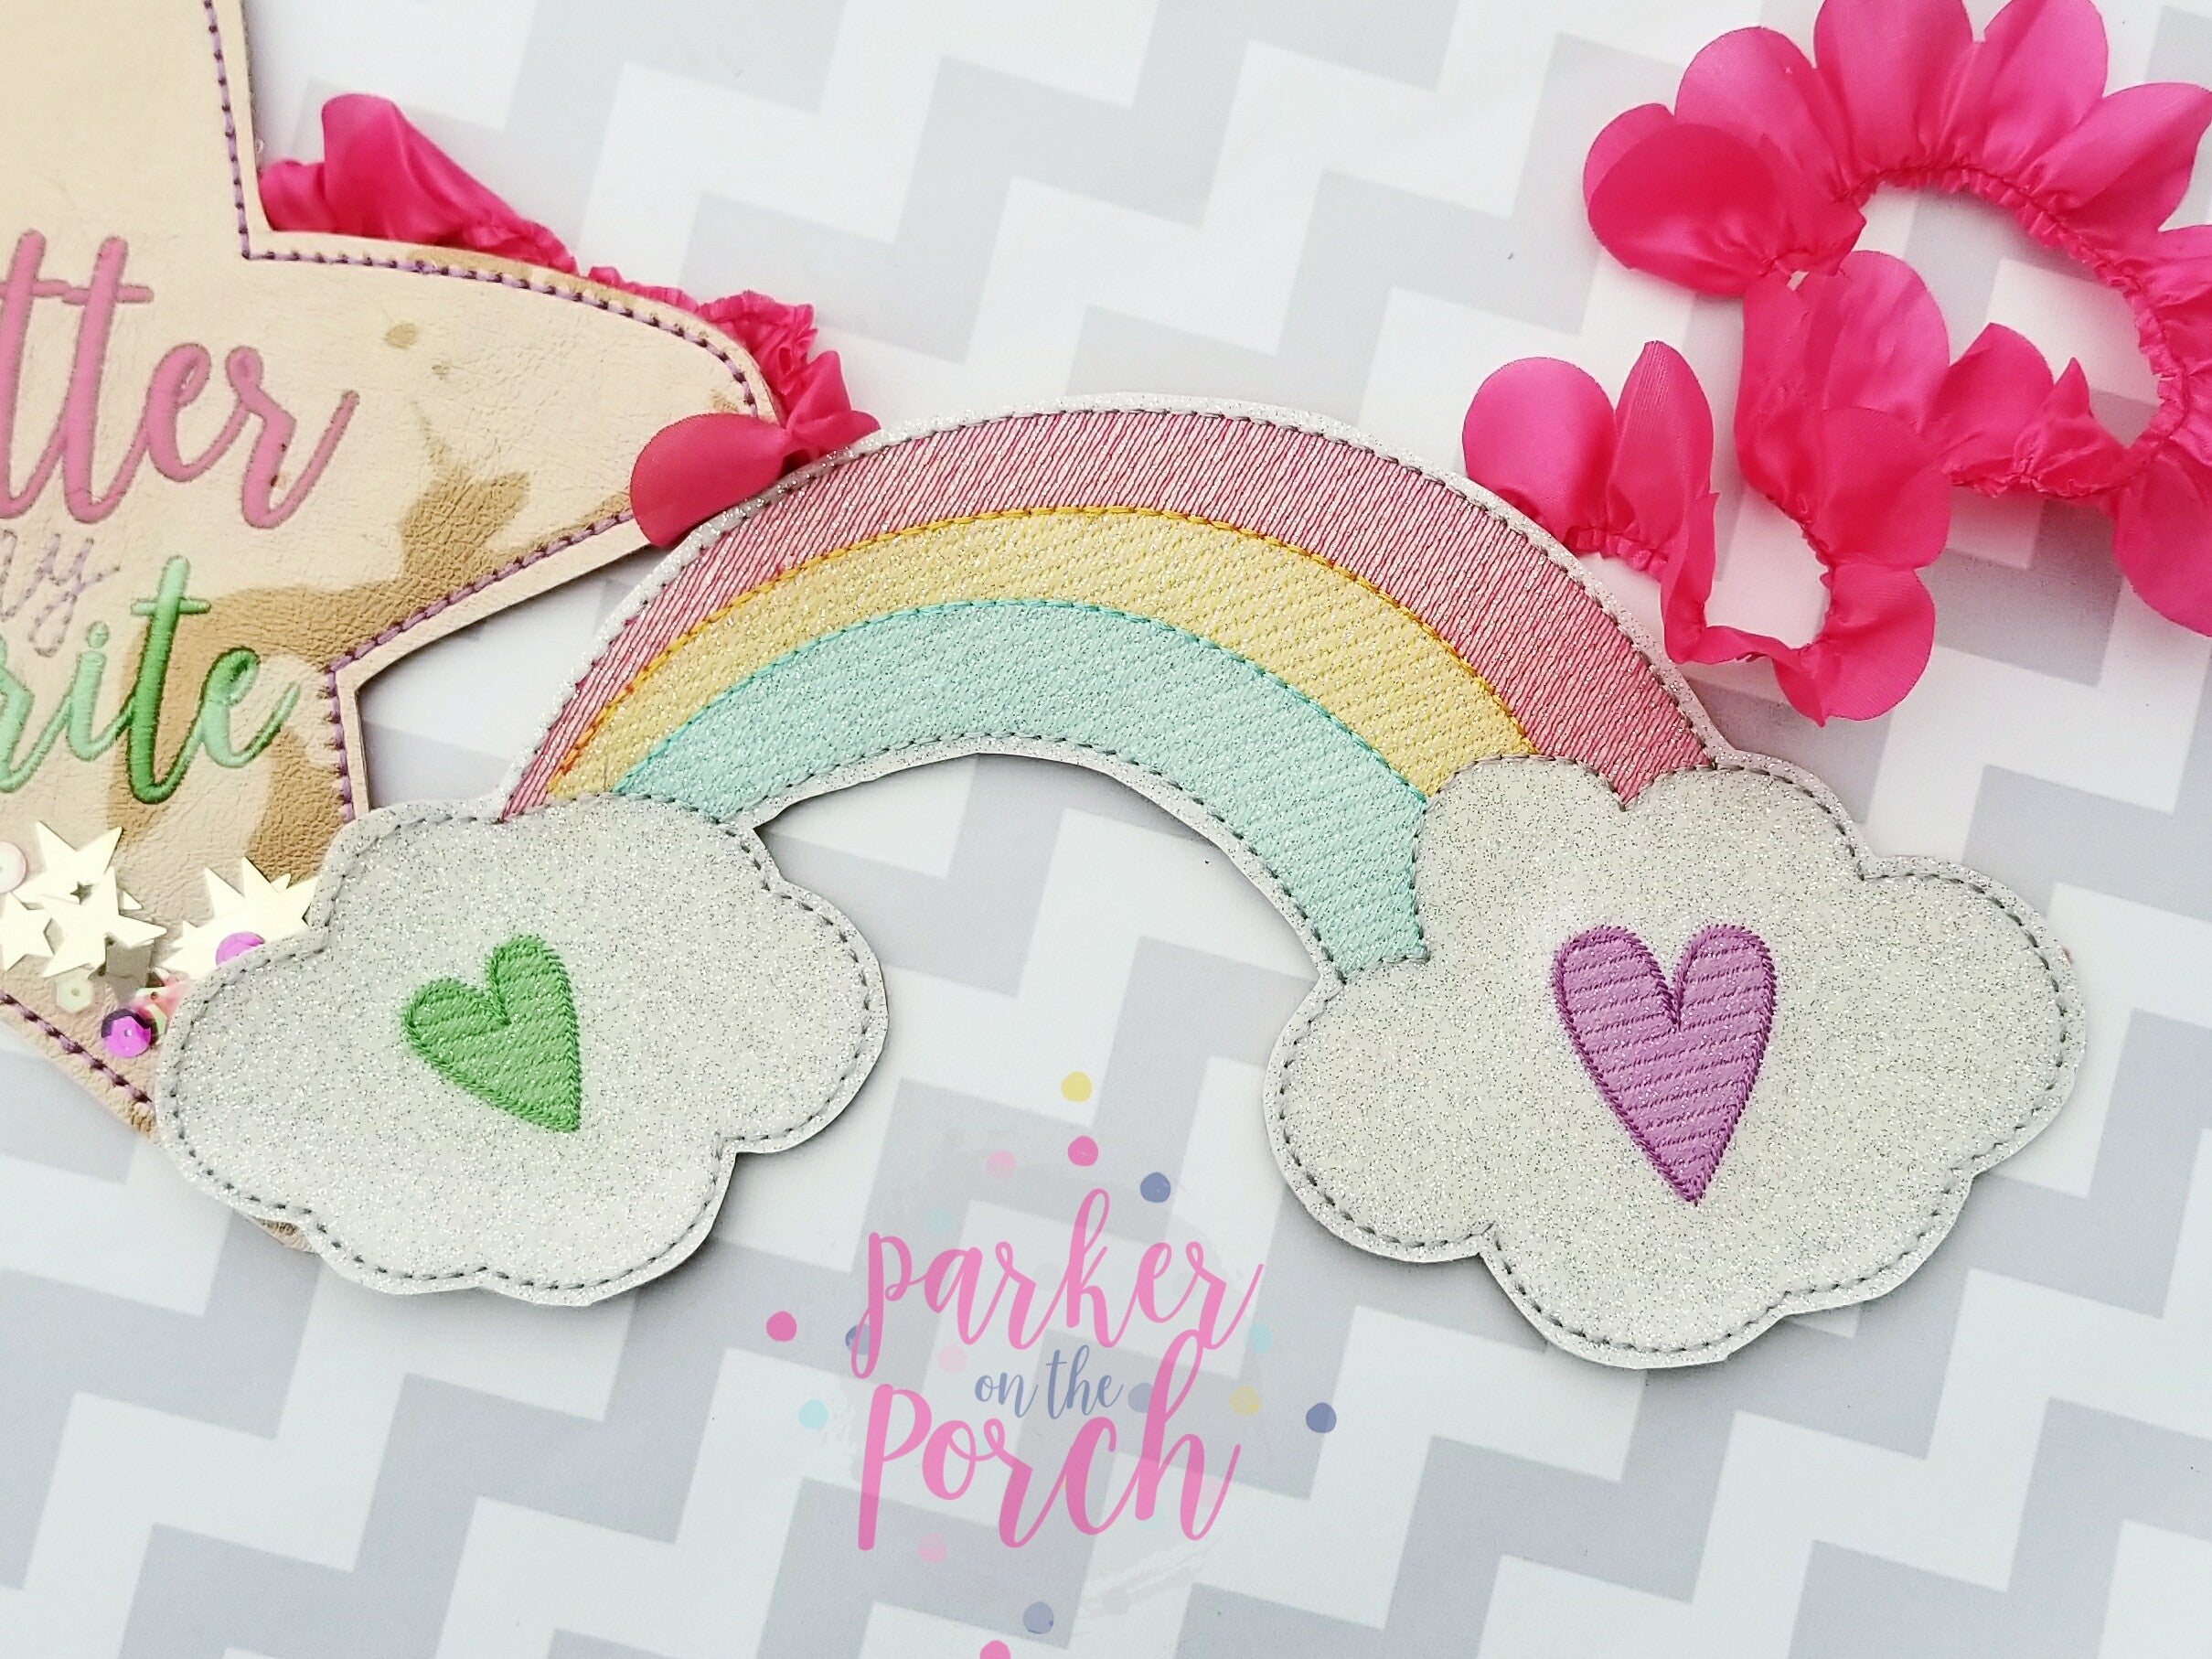 Digital Download - Rainbow Banner - in the hoop machine embroidery ITH pattern